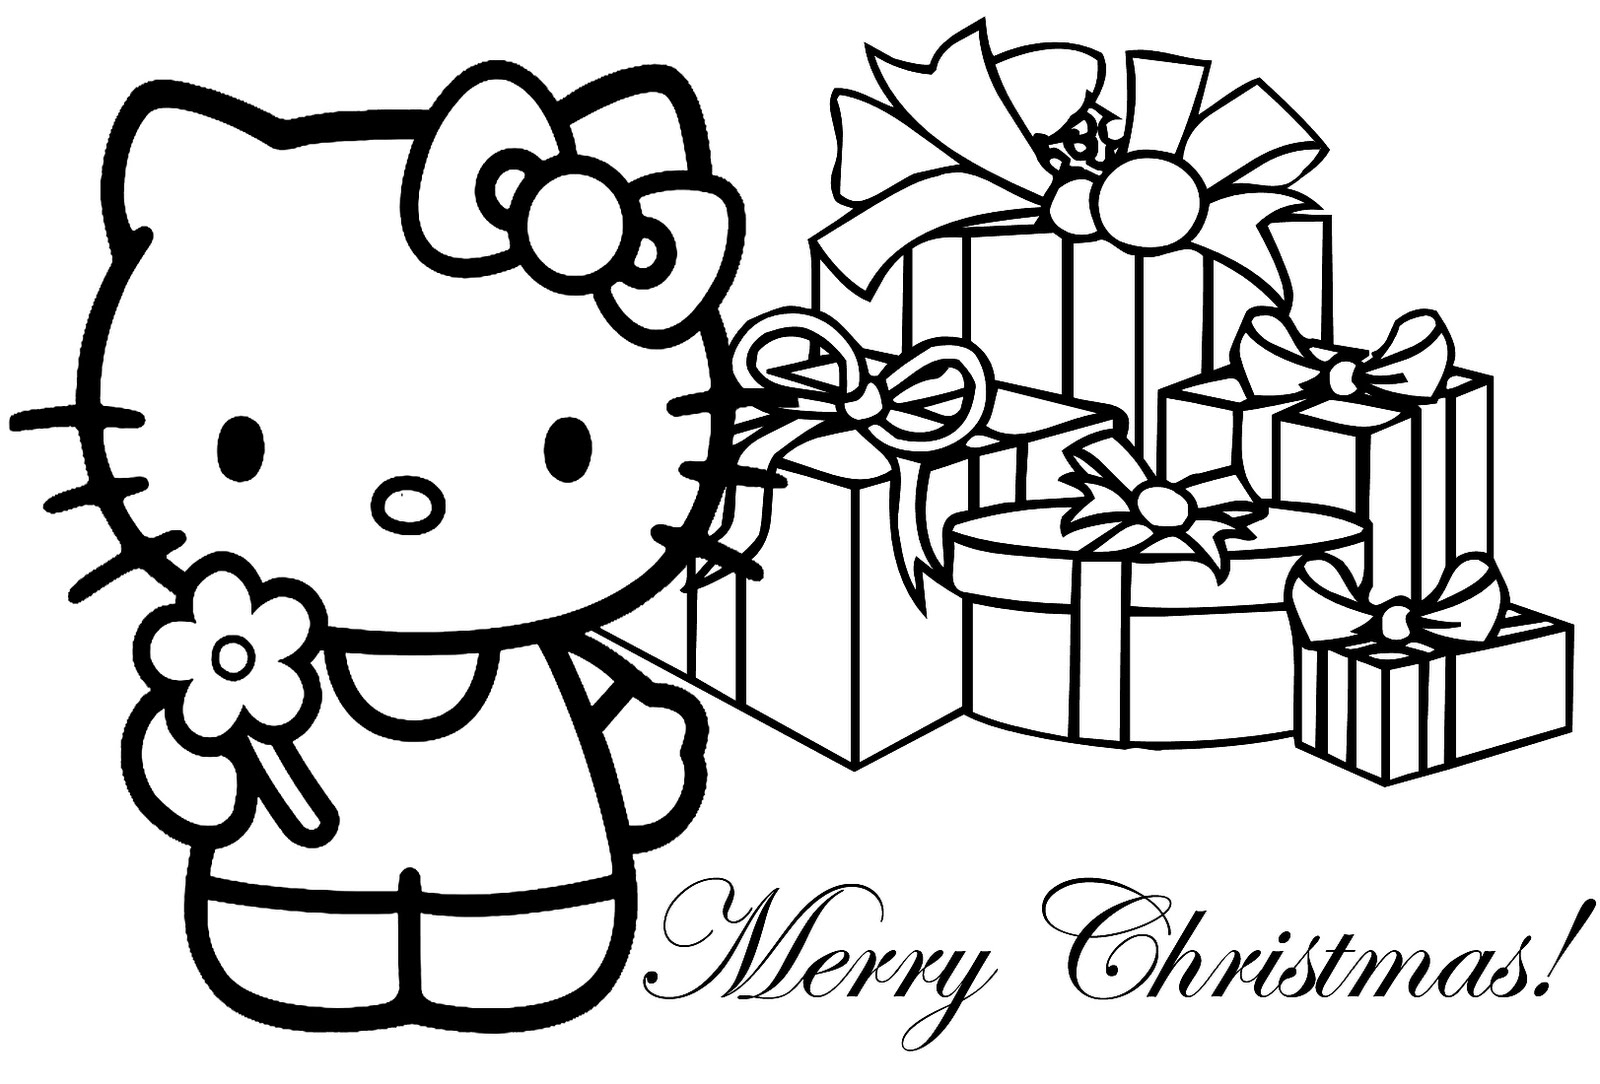 Hello Kitty Merry Christmas Coloring Pages : Hello kitty christmas coloring pages best gift ideas